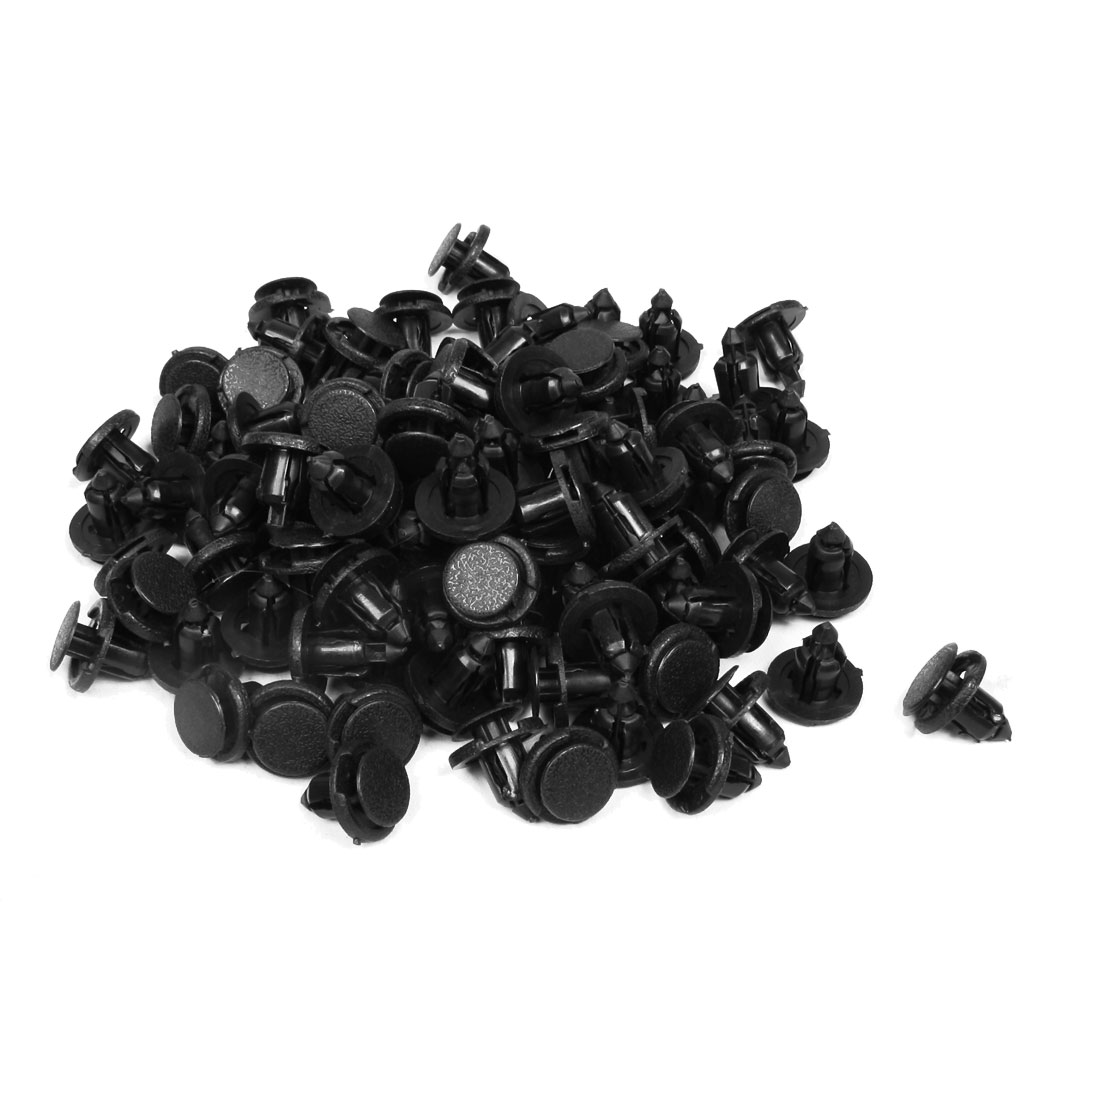 100pcs Auto Interior Push in Expanding Screw Plastic Rivets Black for 8mm Hole